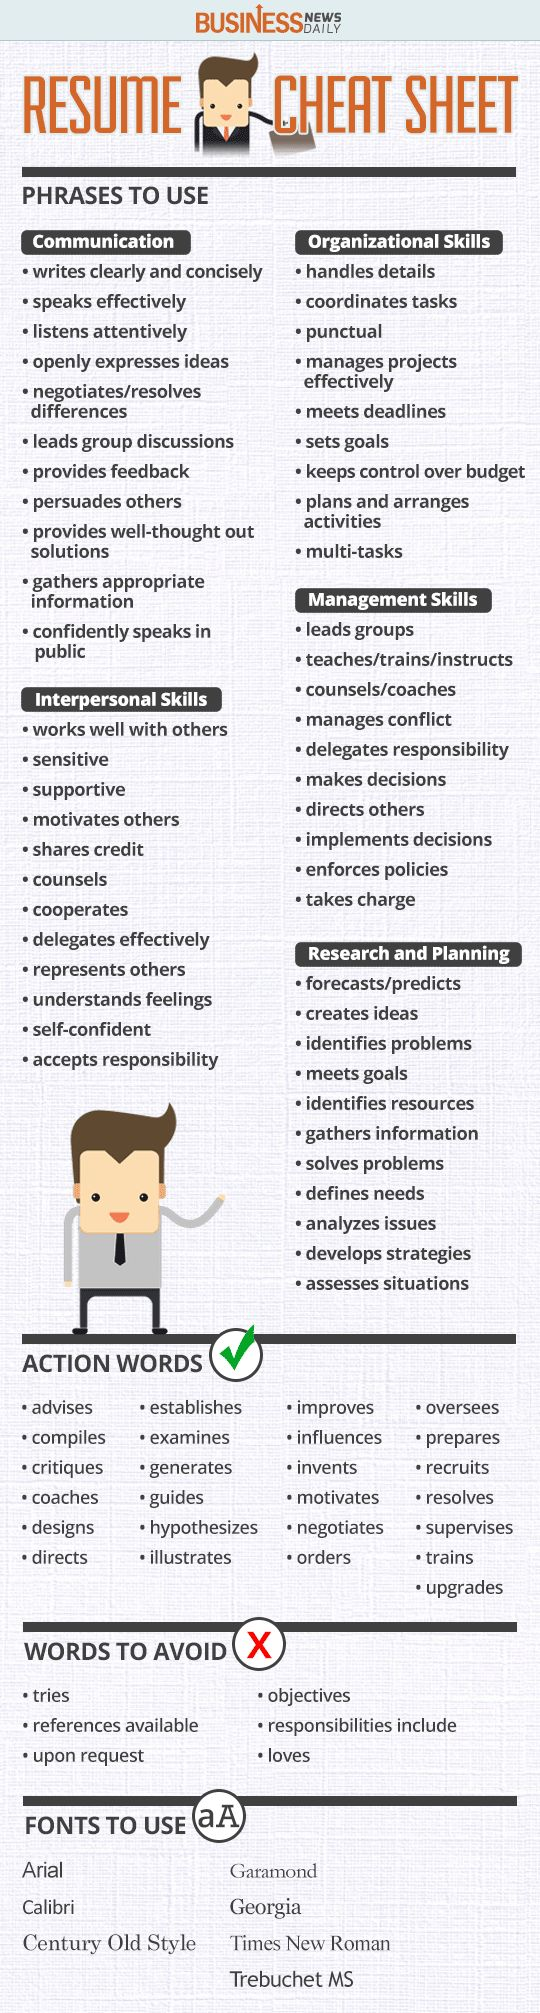 Opposenewapstandardsus  Winning  Ideas About Resume On Pinterest  Cv Format Resume  With Fetching Resume Cheat Sheet Infographic Andrews Almost Done With A Complete Unit On Employment Which With Archaic How To Do A Resume For A Job For Free Also Resume Font Type In Addition Bar Manager Resume And Resume Website Template As Well As Quality Control Resume Additionally How To Format Resume From Pinterestcom With Opposenewapstandardsus  Fetching  Ideas About Resume On Pinterest  Cv Format Resume  With Archaic Resume Cheat Sheet Infographic Andrews Almost Done With A Complete Unit On Employment Which And Winning How To Do A Resume For A Job For Free Also Resume Font Type In Addition Bar Manager Resume From Pinterestcom